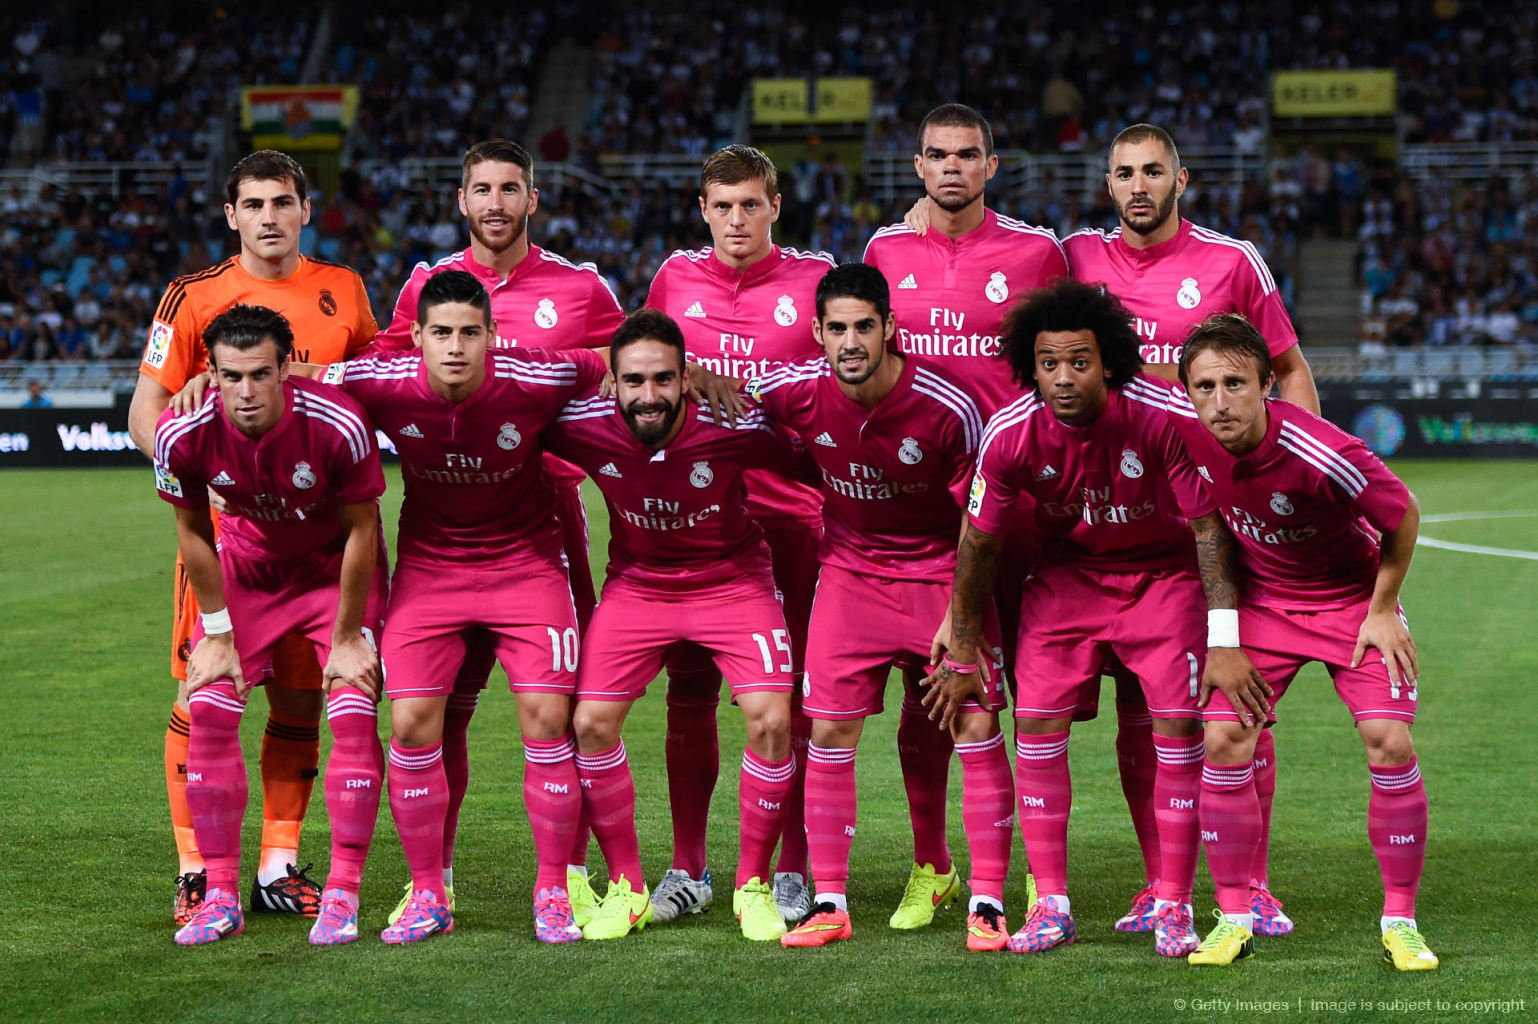 Real Sociedad Vs Madrid 31 08 14